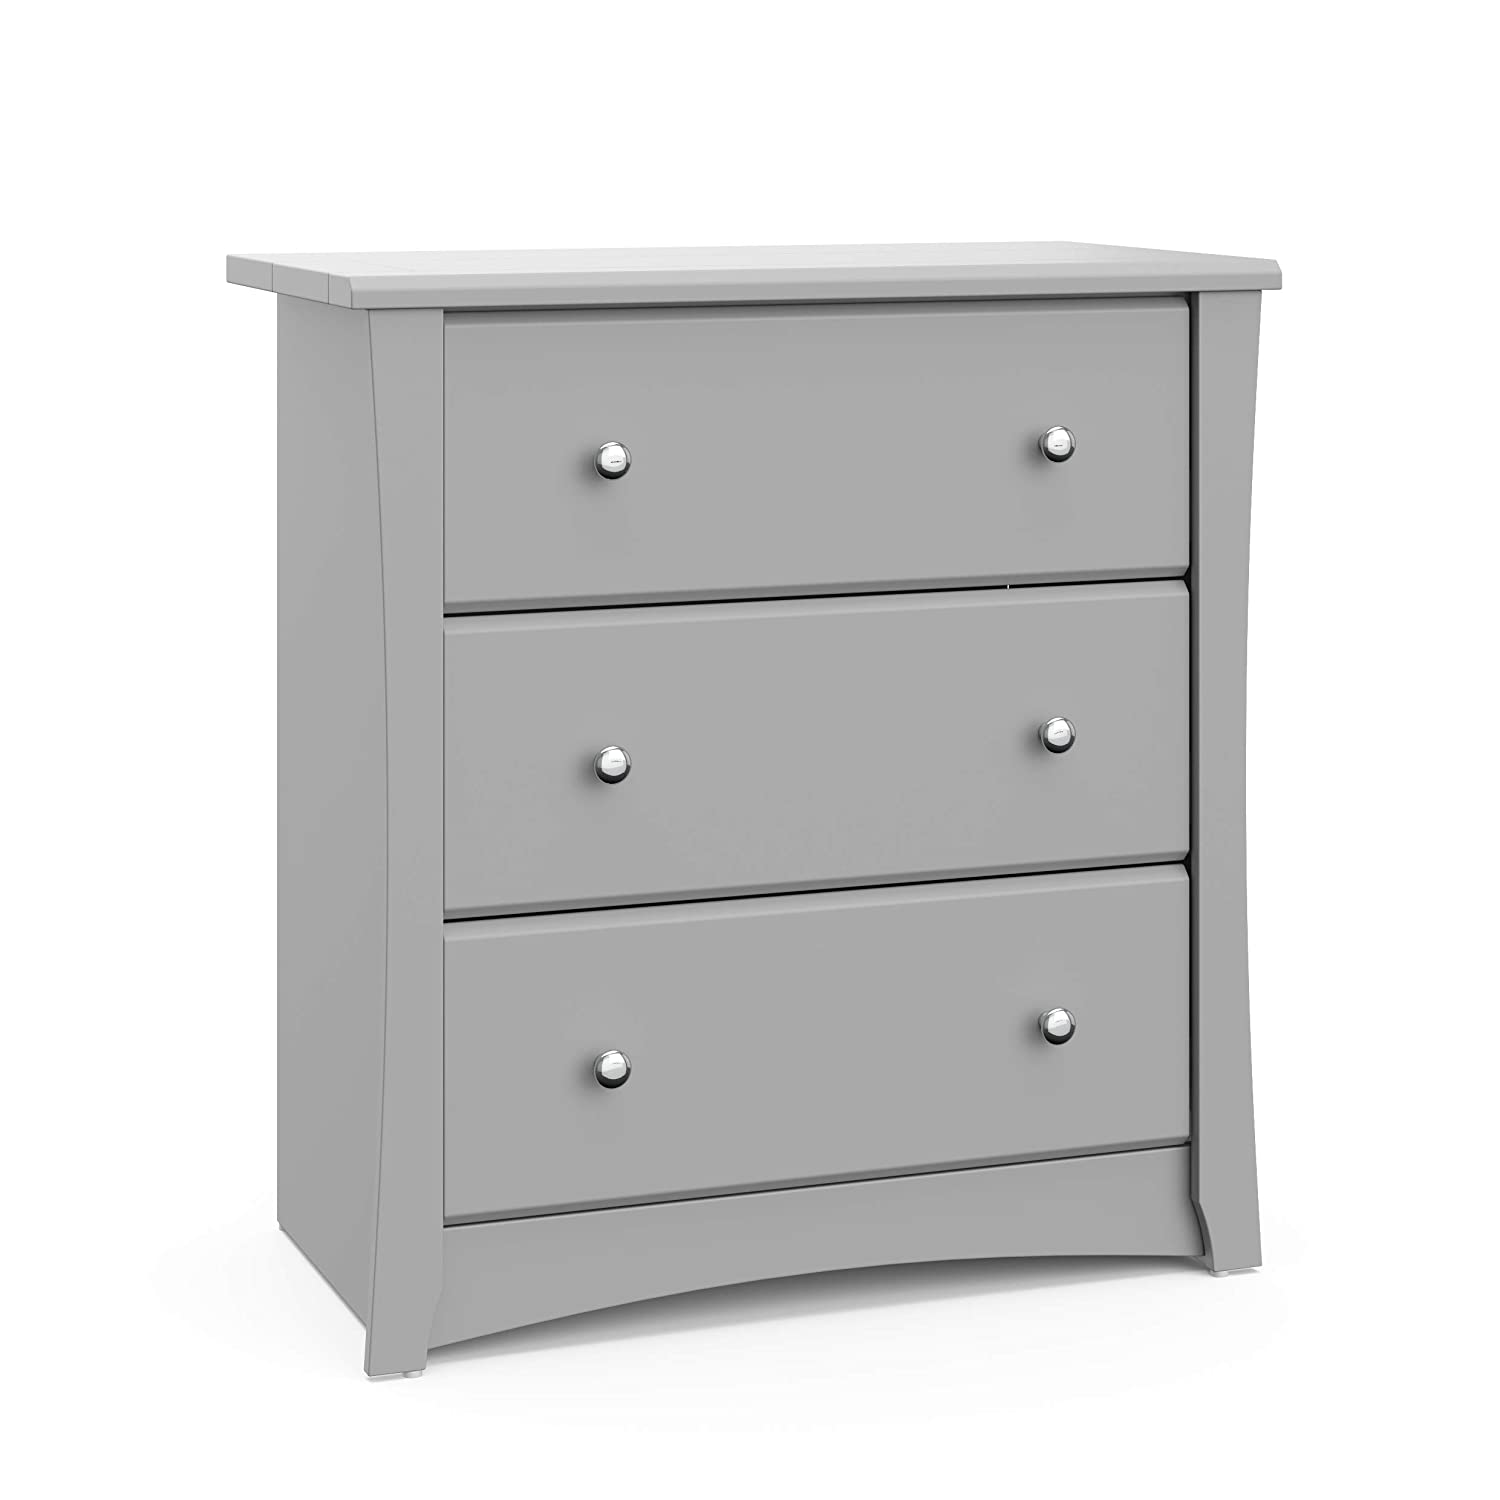 Storkcraft Crescent 3 Drawer Chest - Pebble Gray